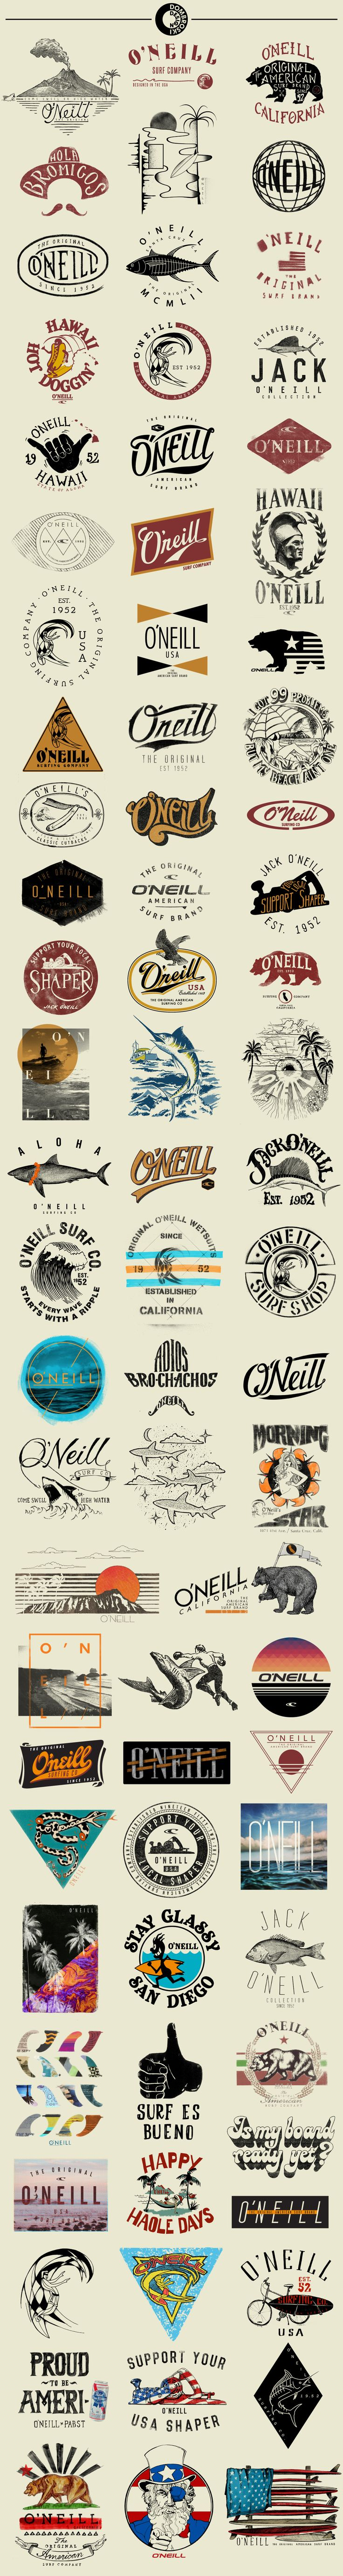 O'Neill T-Shirt Graphics on Behance